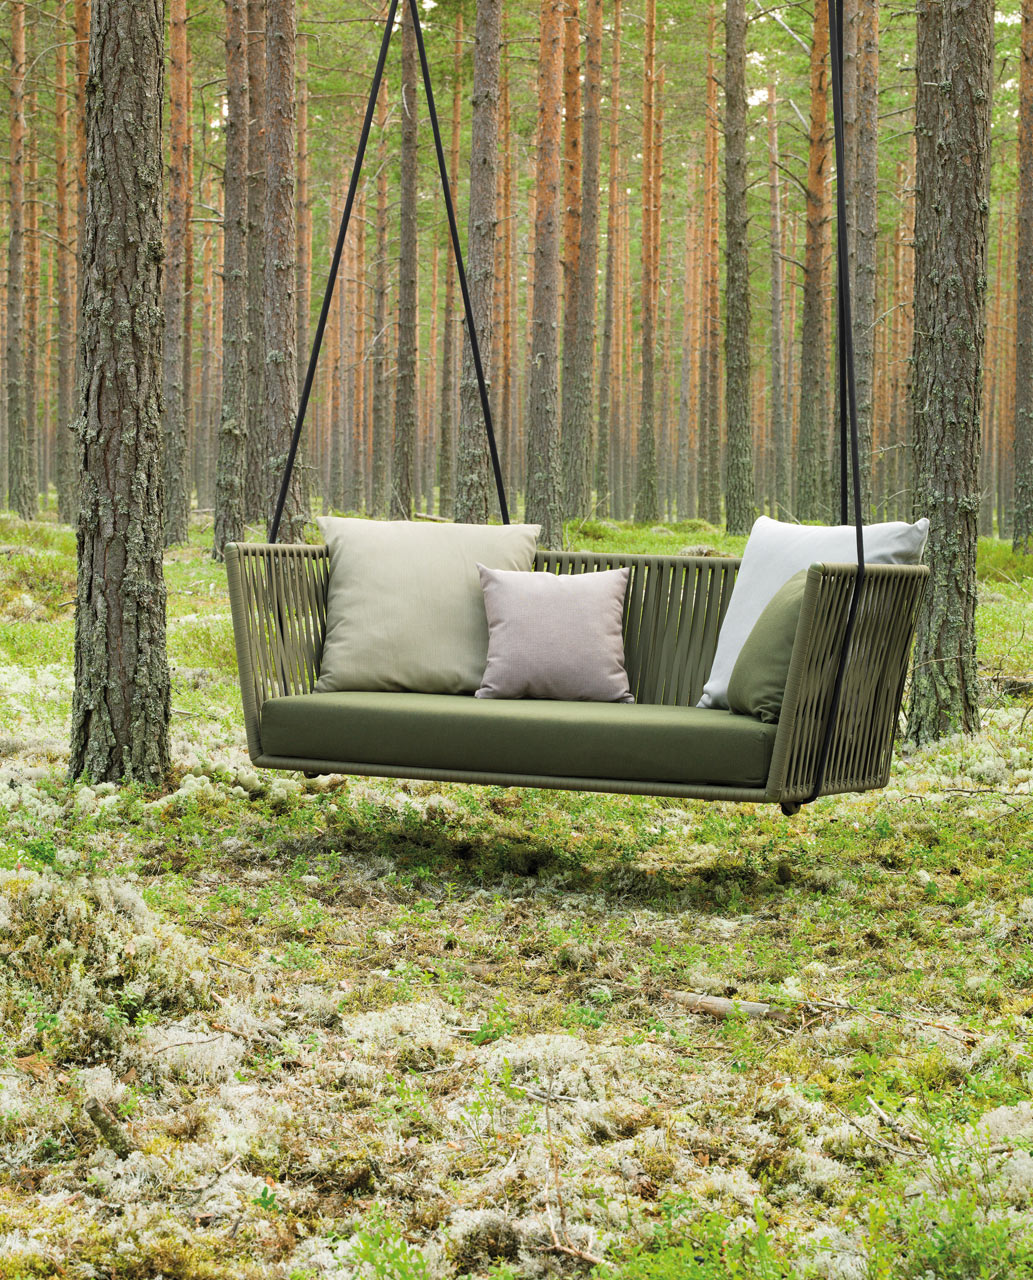 Attirant Braided Outdoor Furniture By Rodolfo Dordoni For Kettal ...